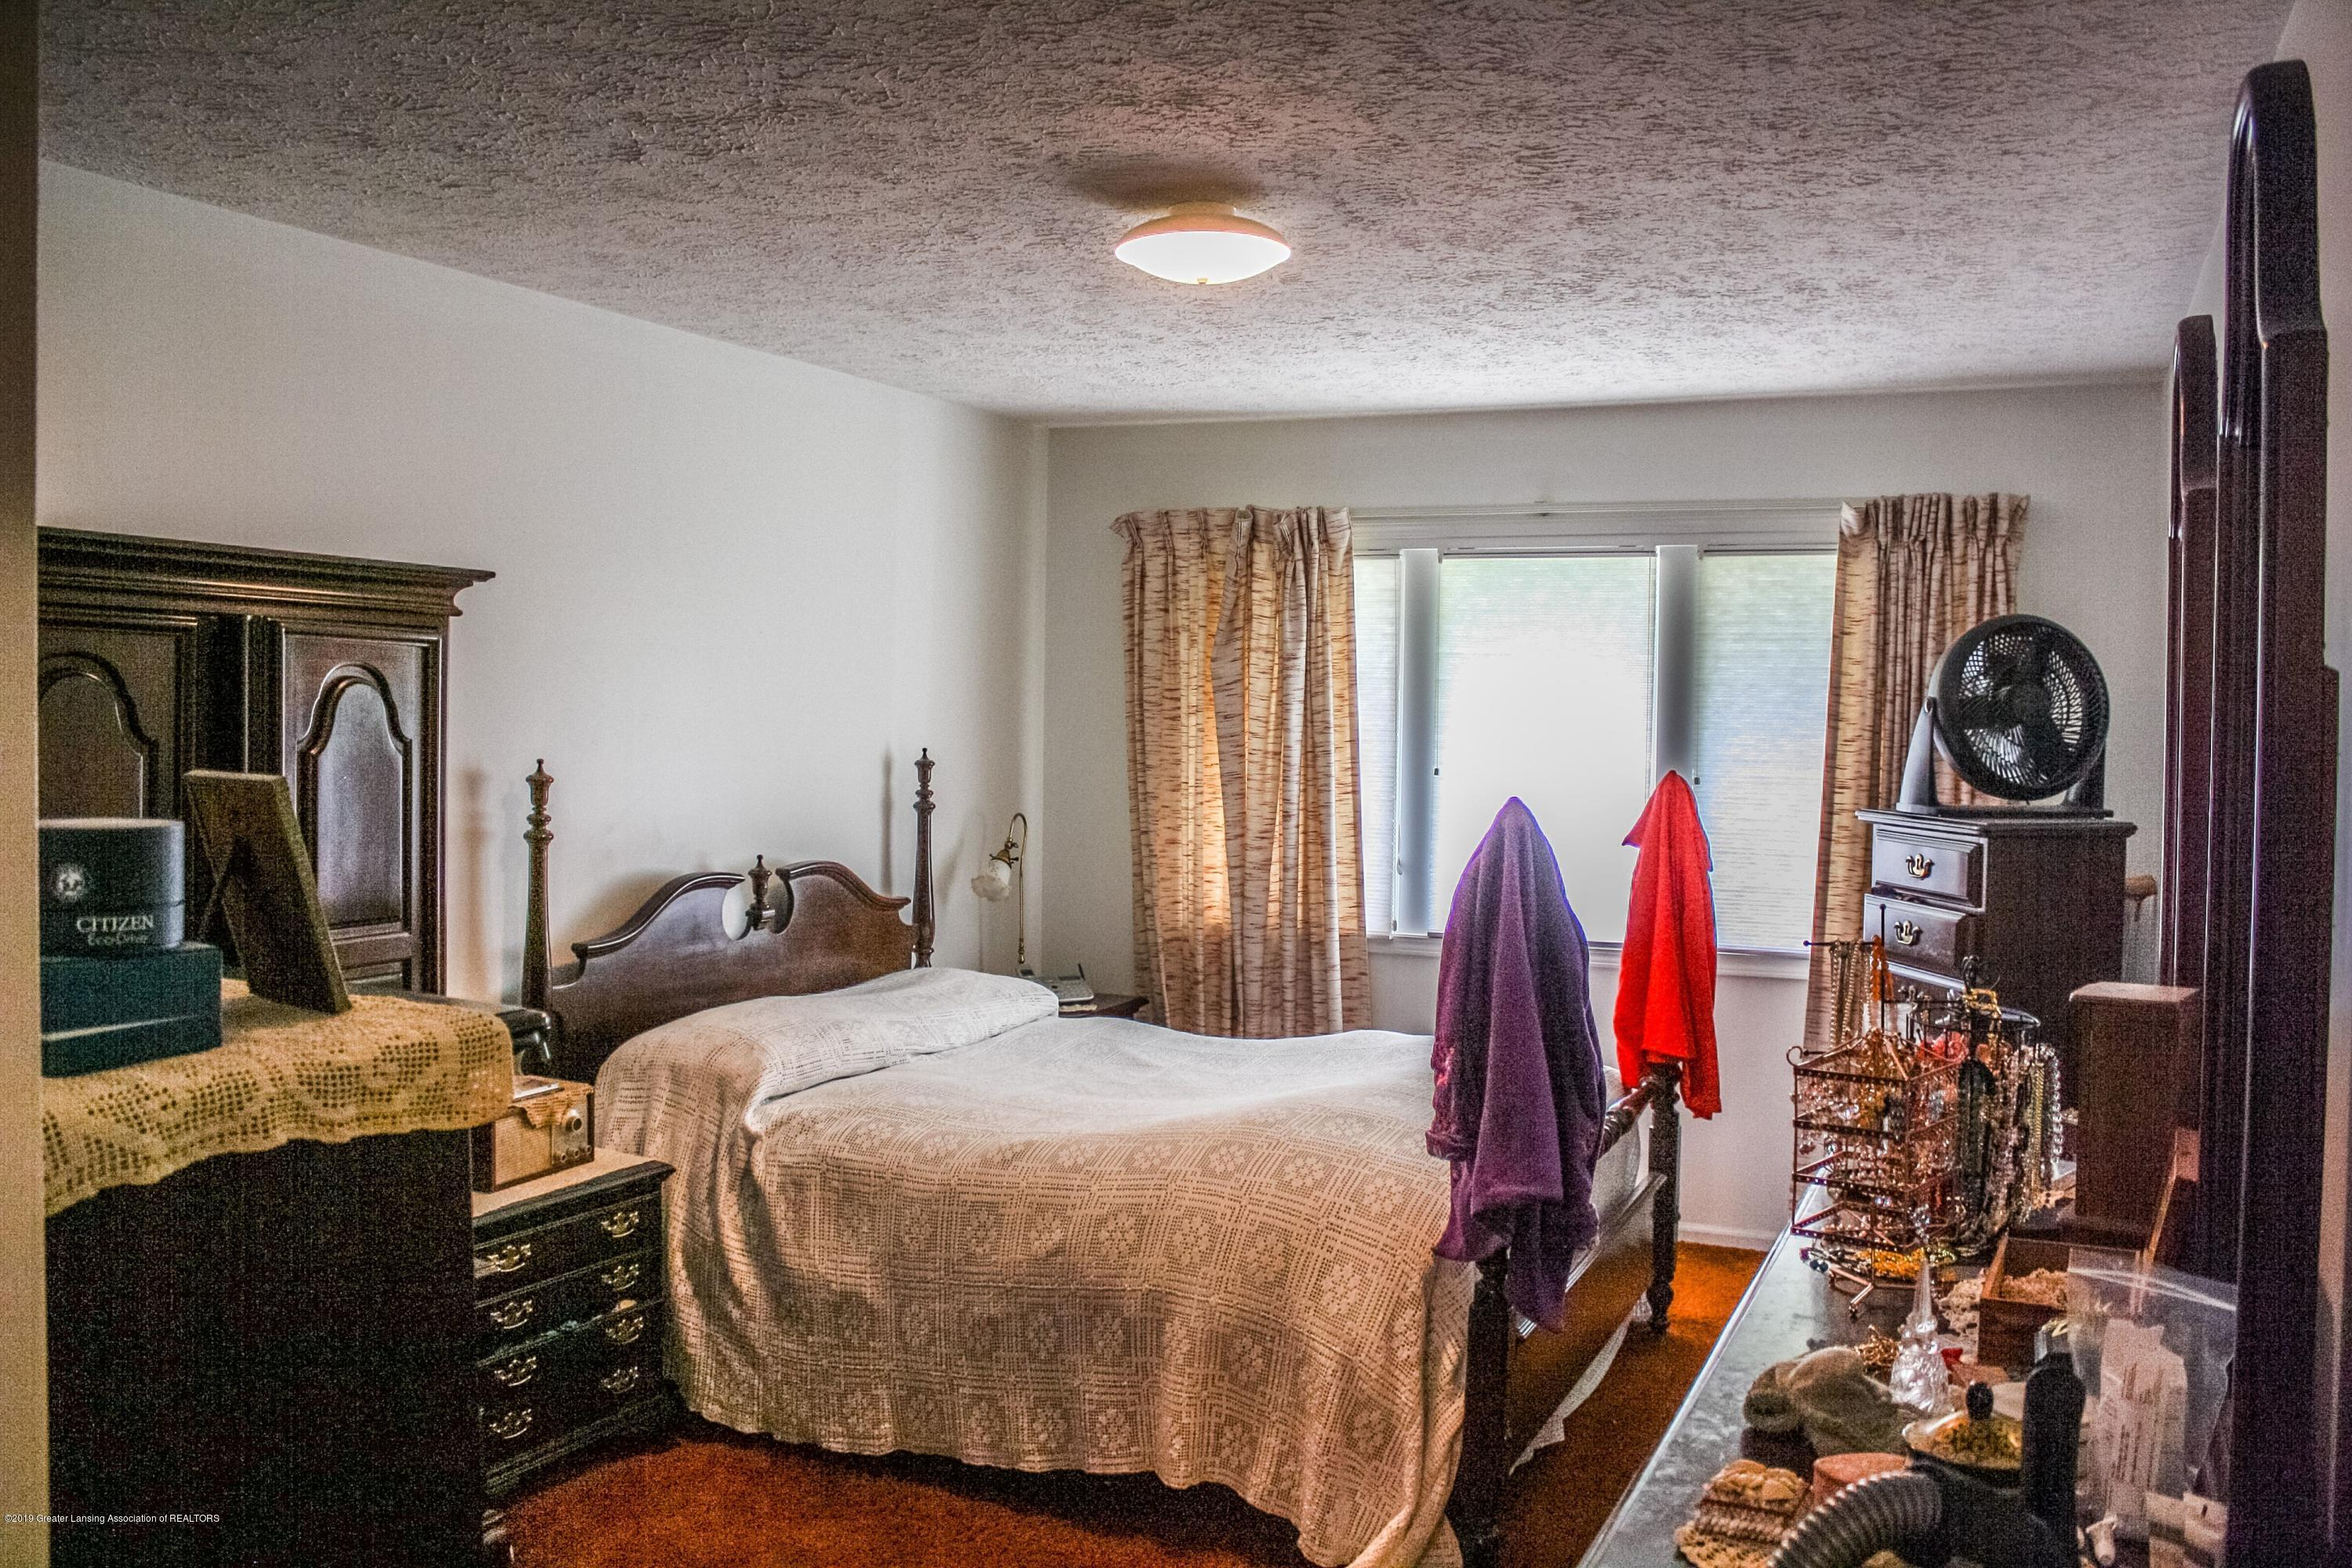 7208 Creekside Dr - Bedroom - 11